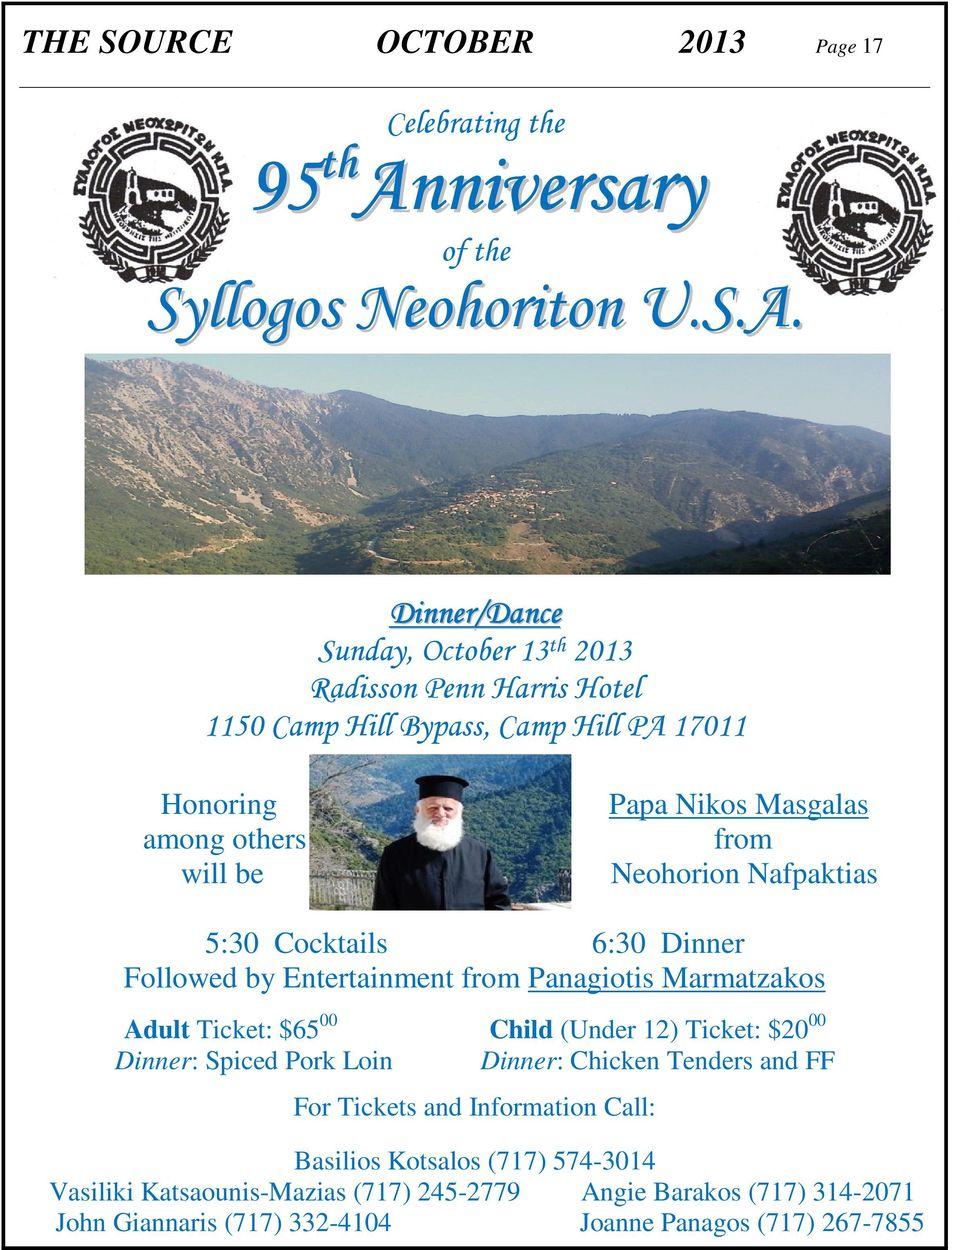 Dinner/Dance Sunday, October 13 th 2013 Radisson Penn Harris Hotel 1150 Camp Hill Bypass, Camp Hill PA 17011 Honoring among others will be Papa Nikos Masgalas from